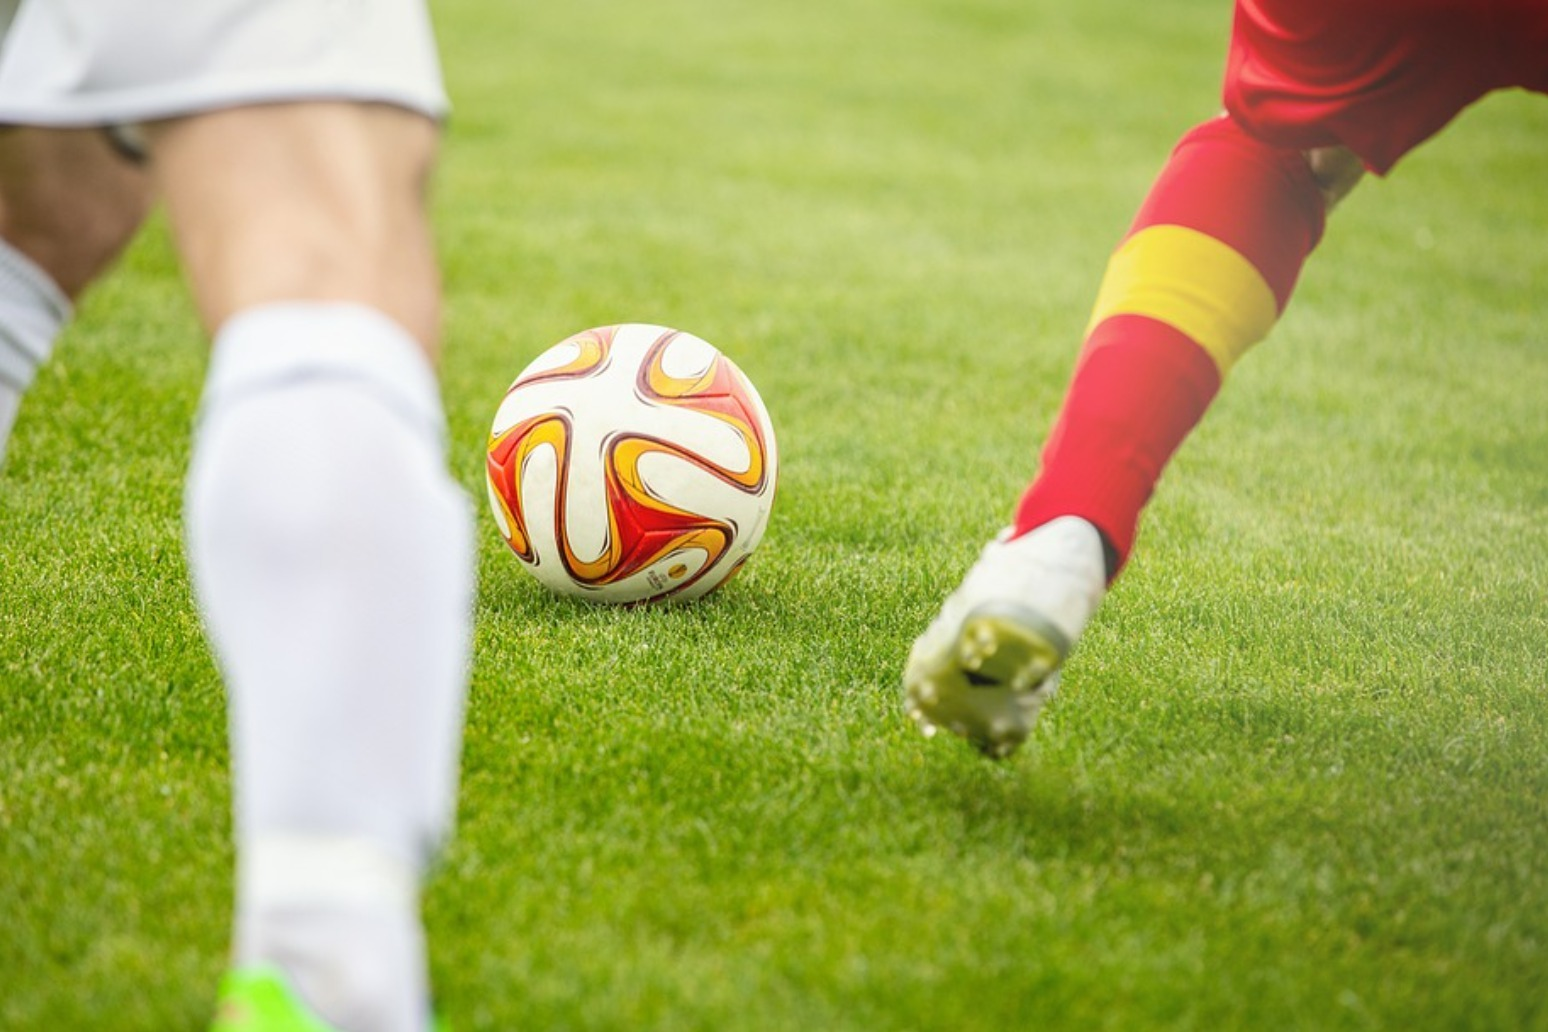 Home advantage 'halved' for football teams playing in empty stadiums